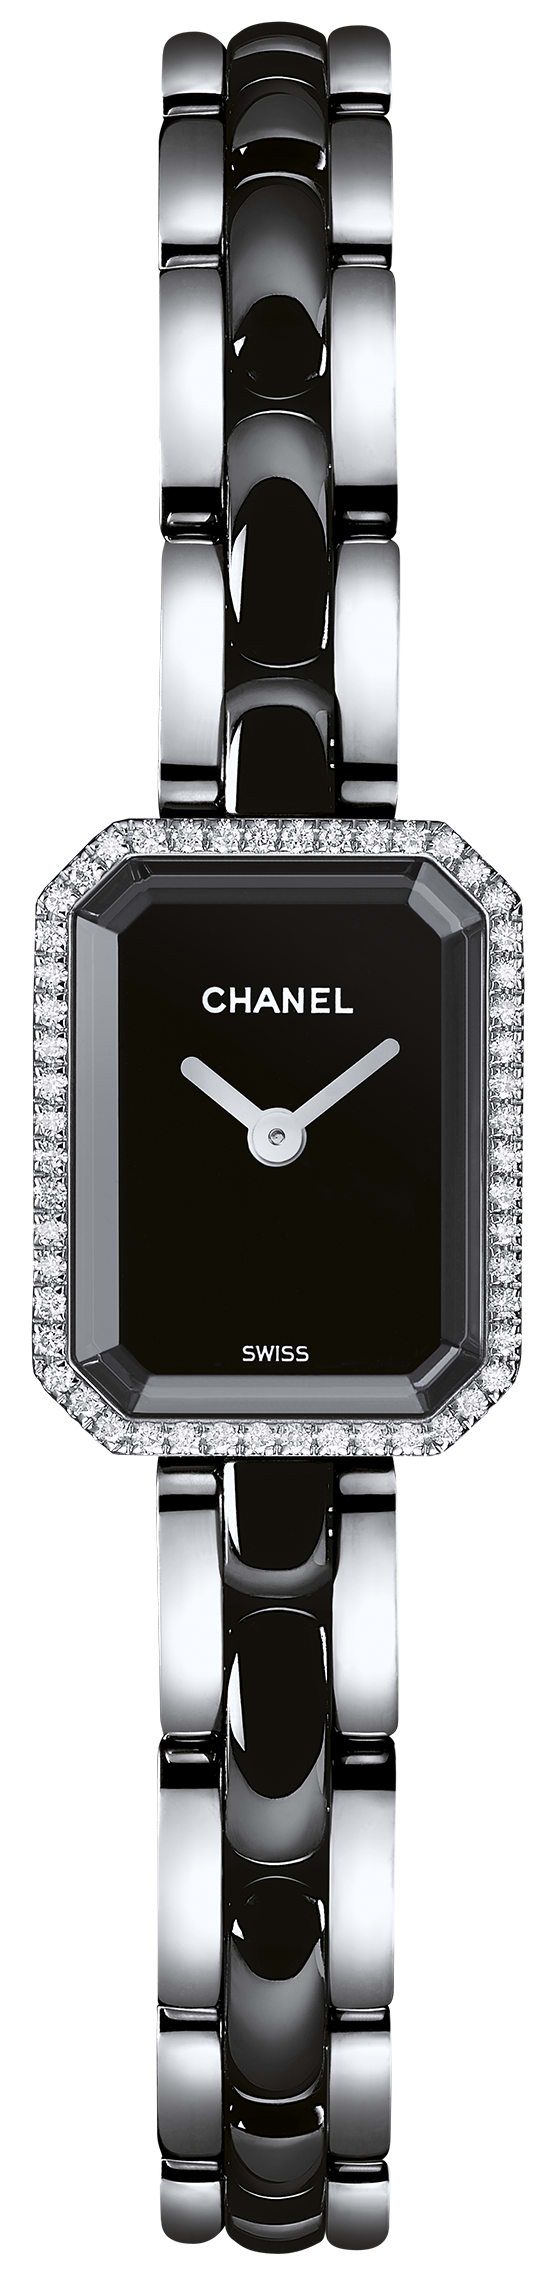 Chanel Premiere Mini 20mm Ladies Watch Model H2163